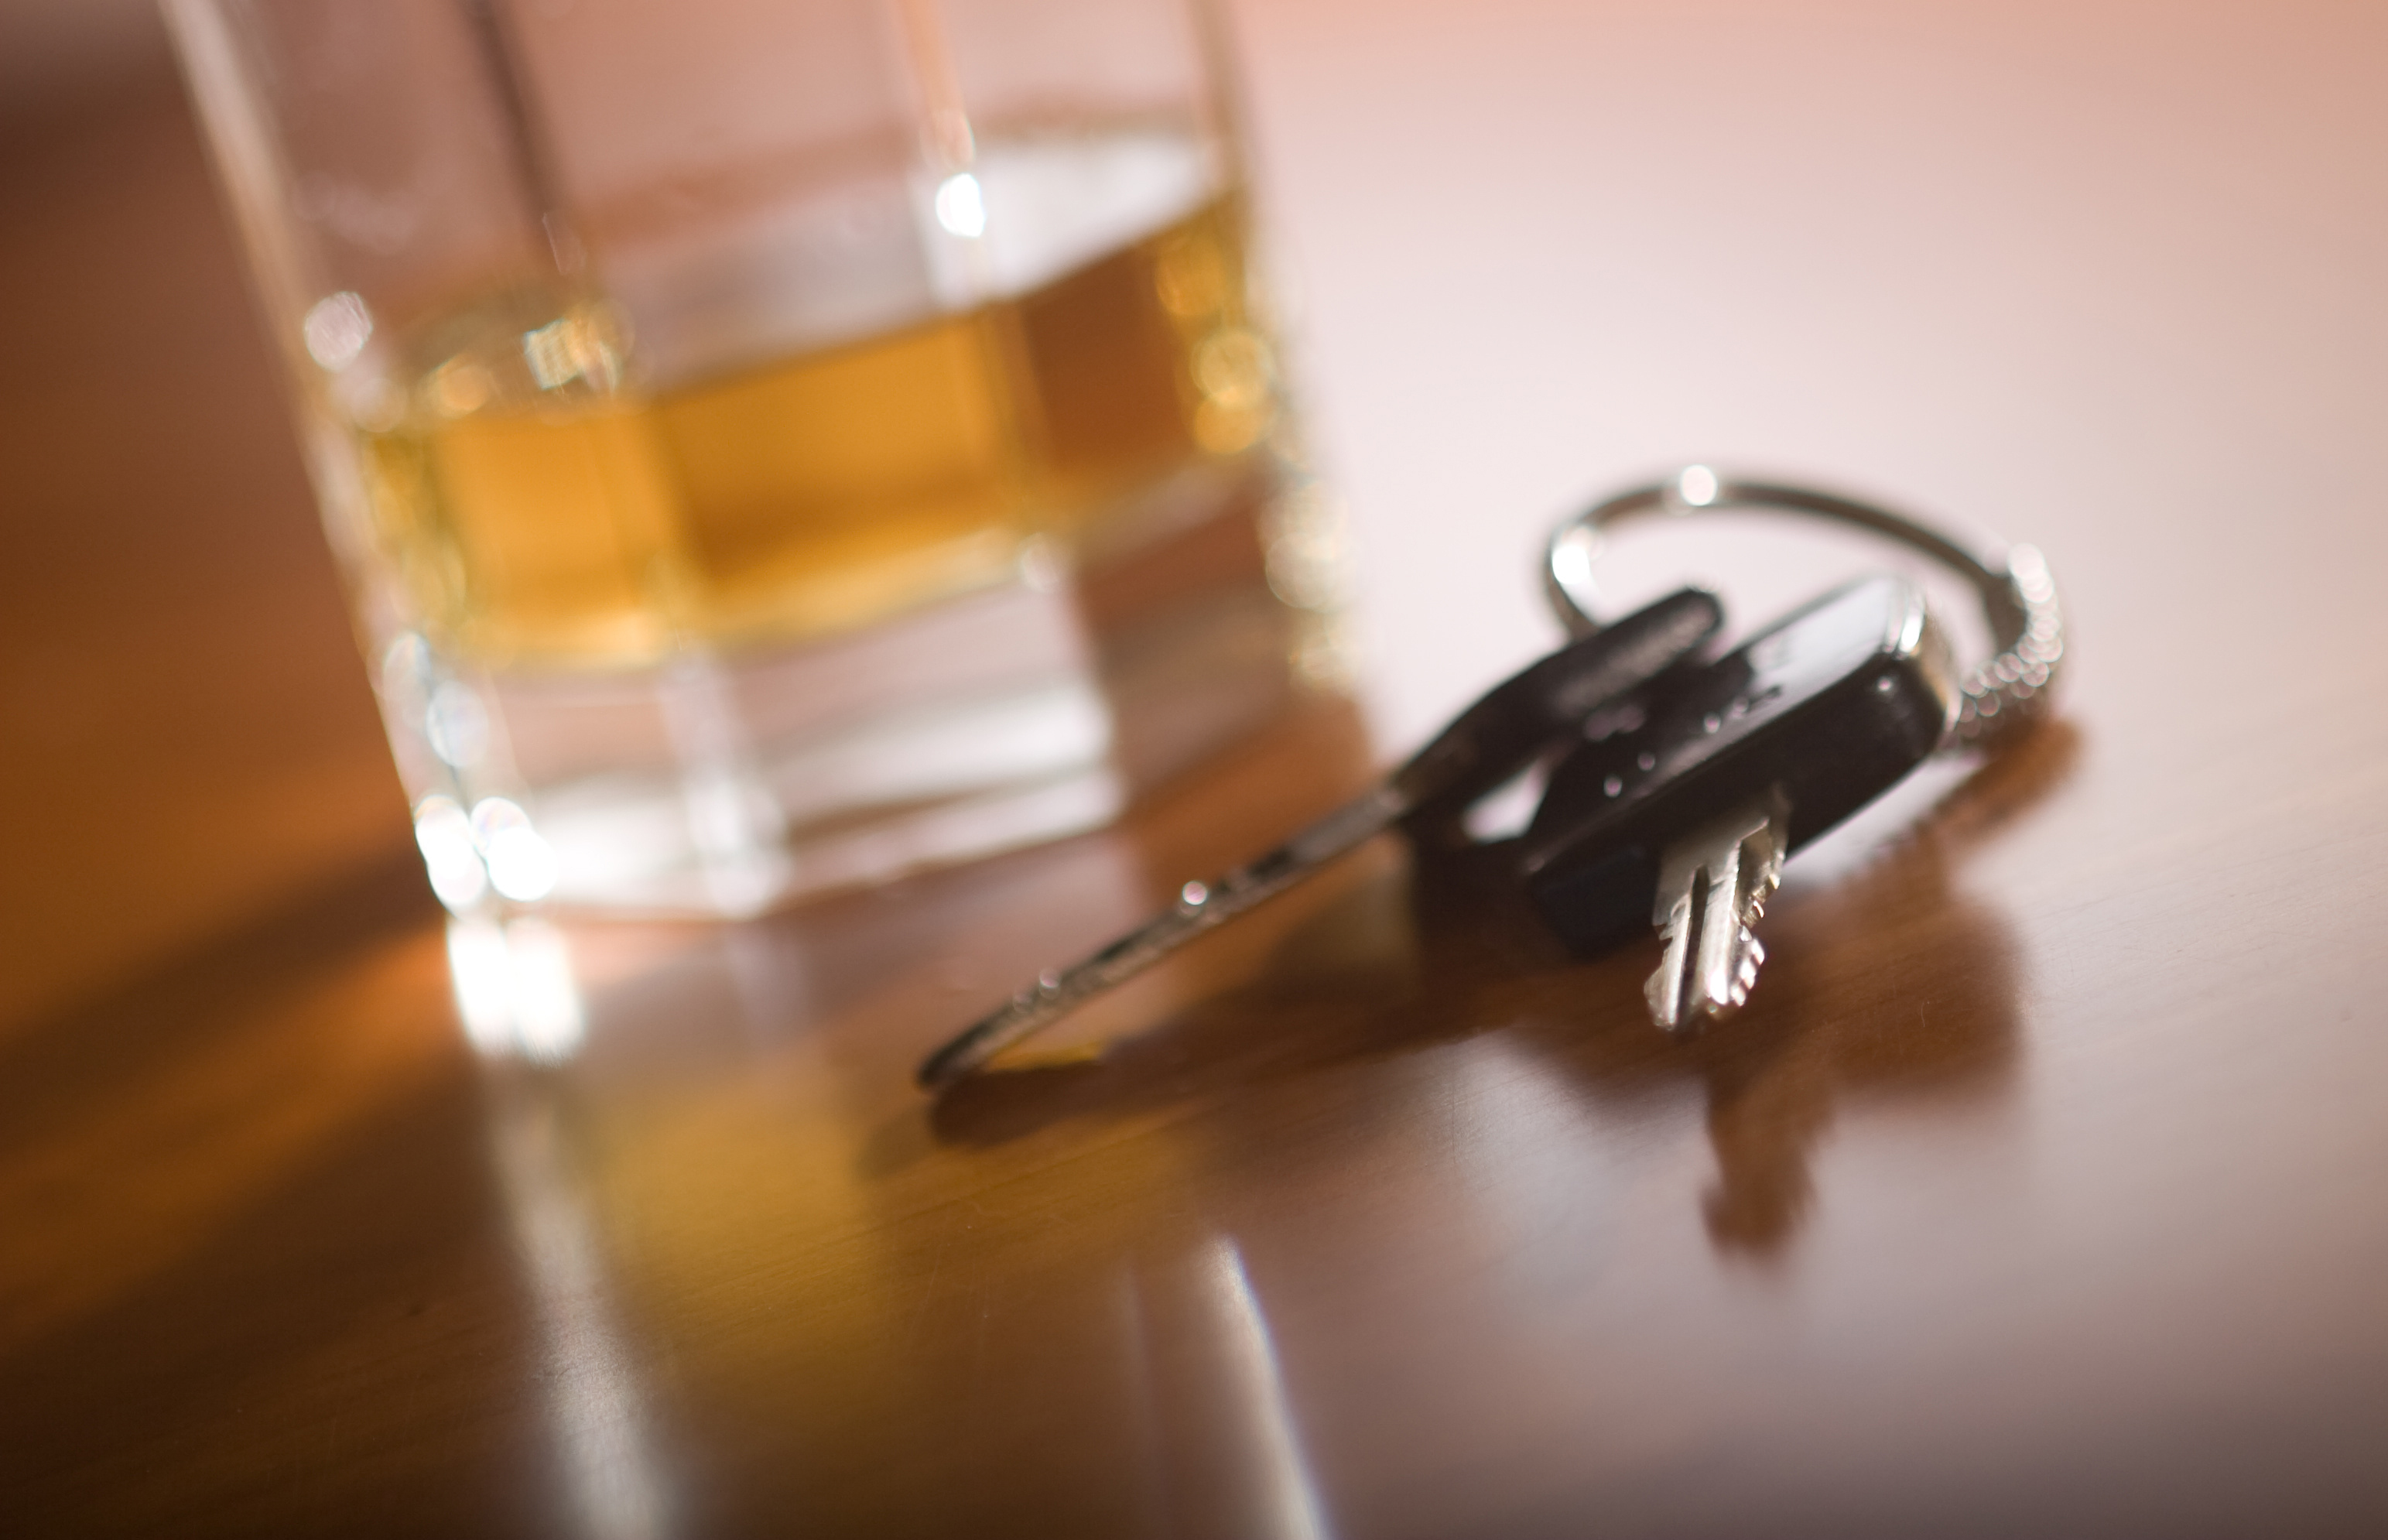 The implications of drink driving and needing a licence for work